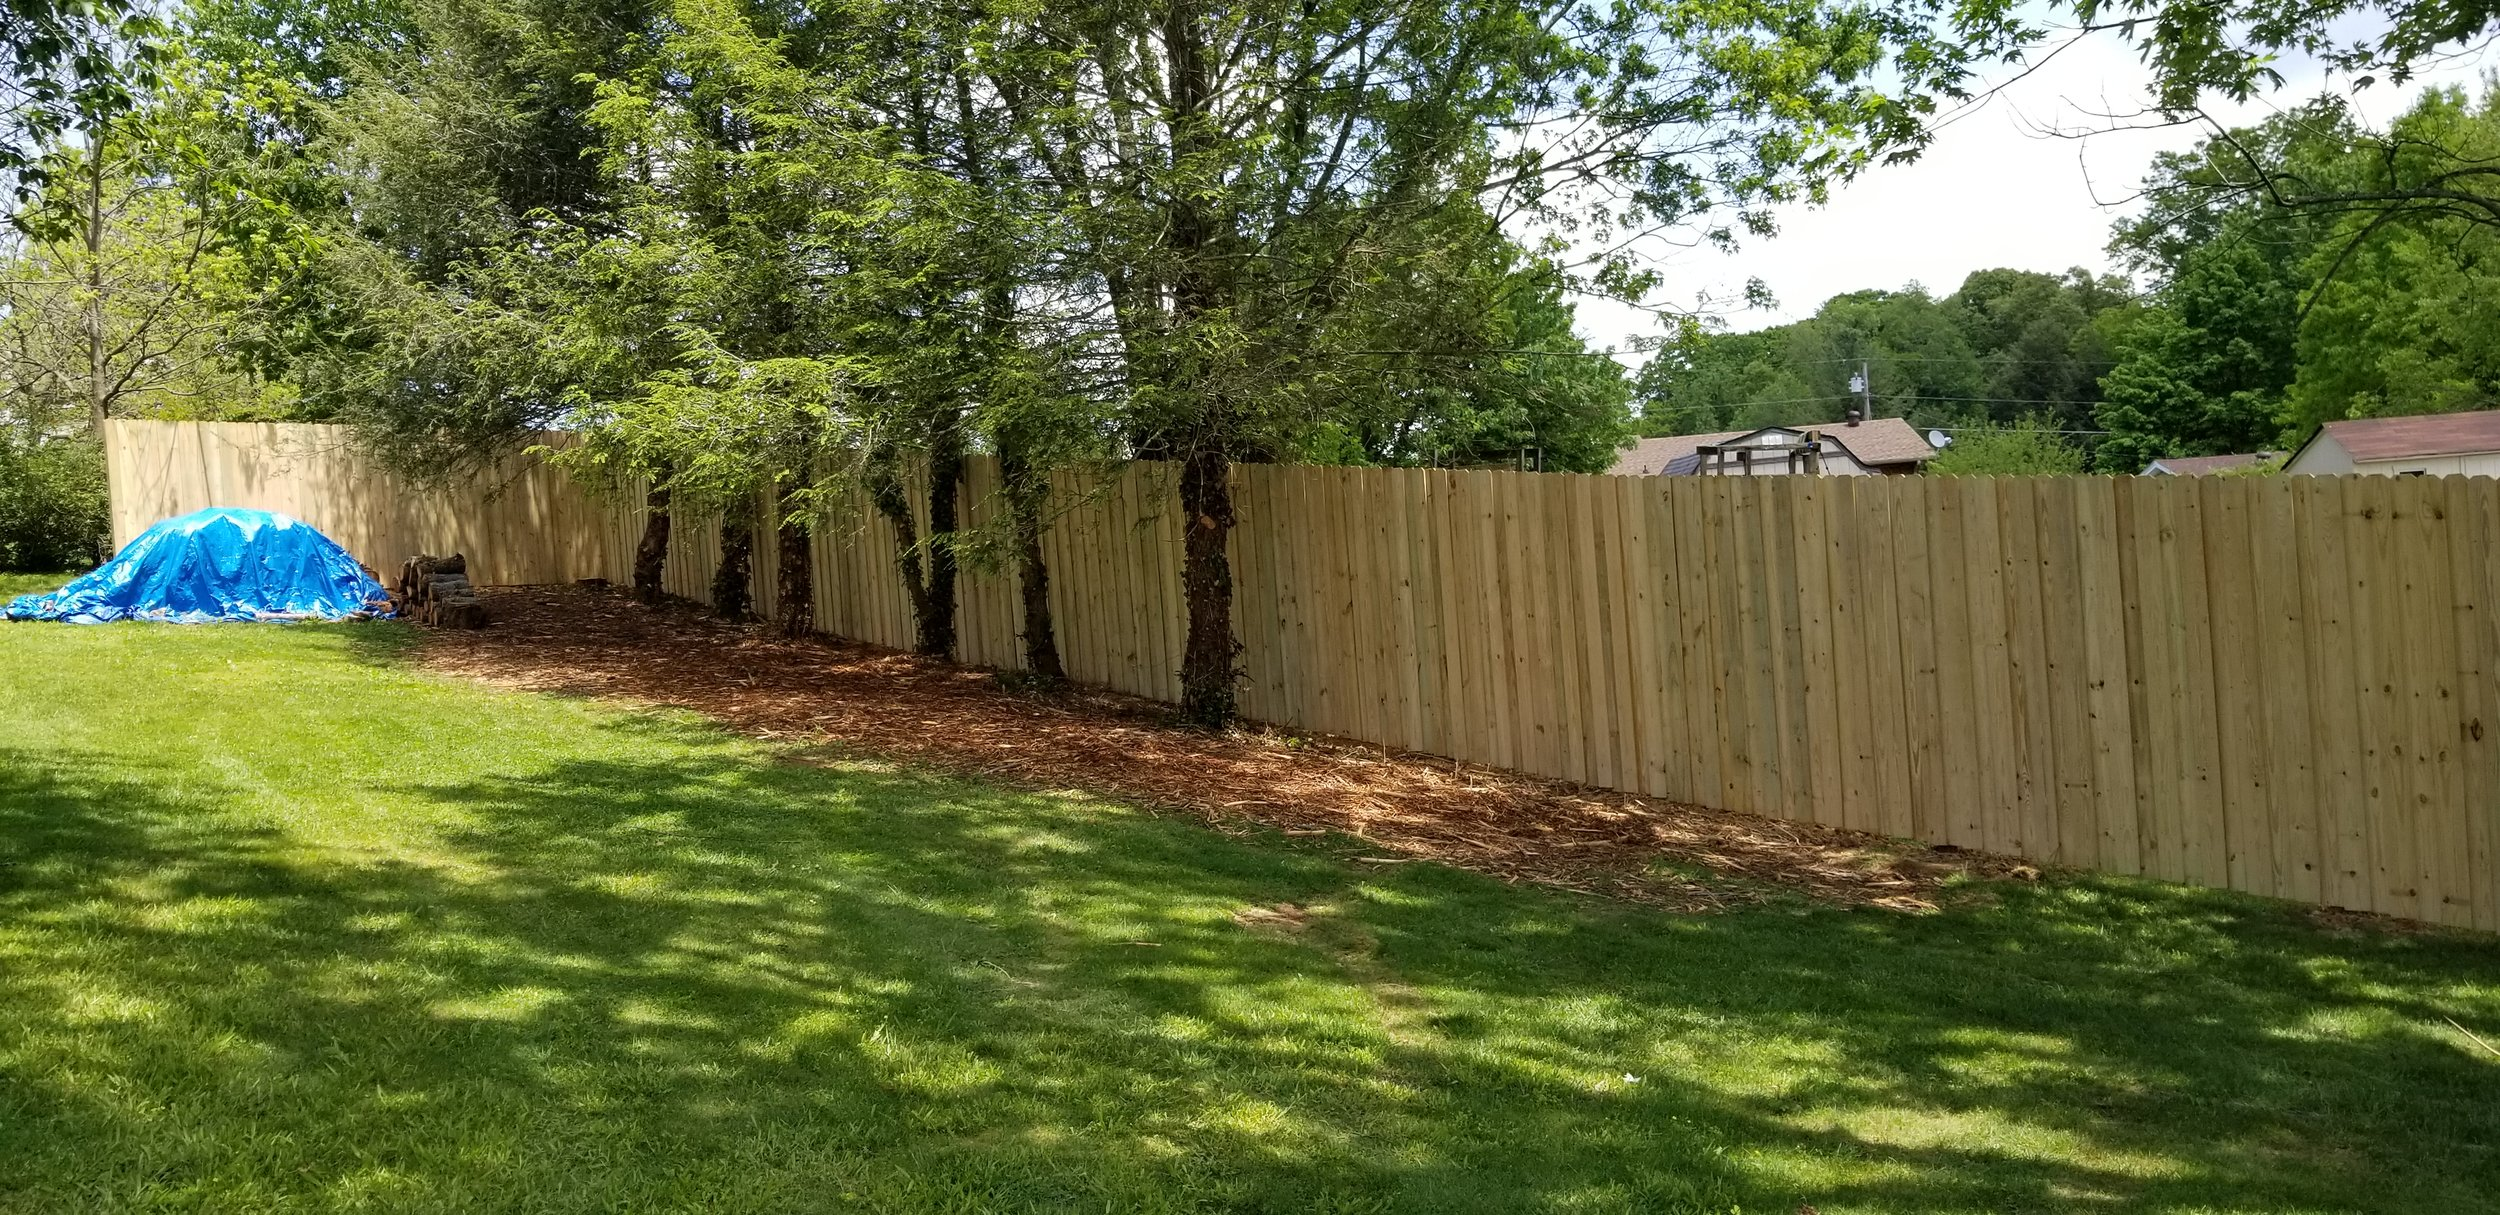 New Wood Privacy Fence 220 Feet (Jonesborough, Tn)